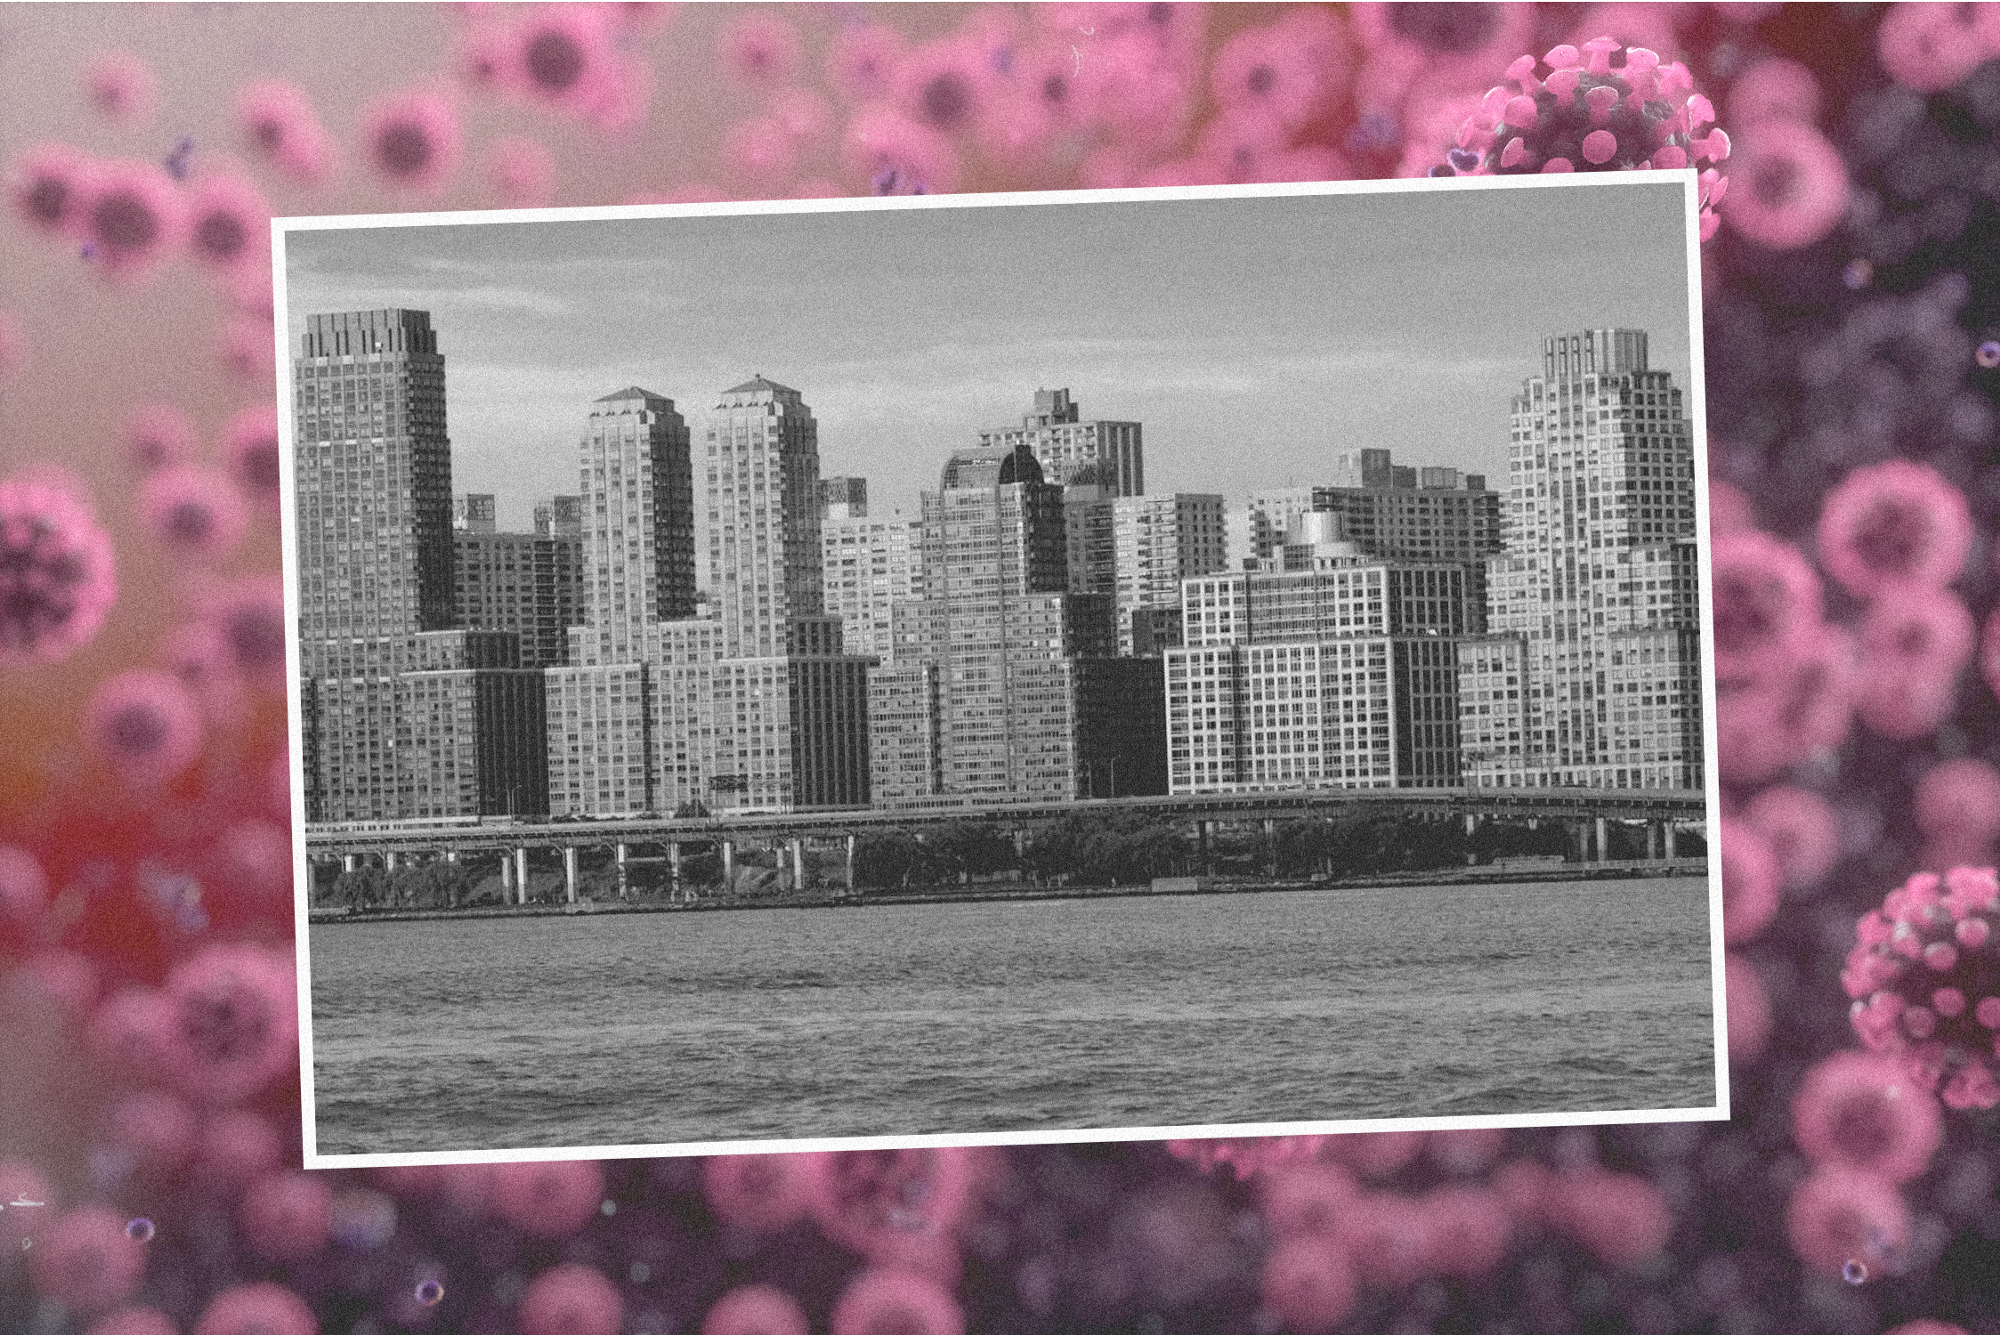 A photograph of NYC skyline with coronavirus particles in the background.